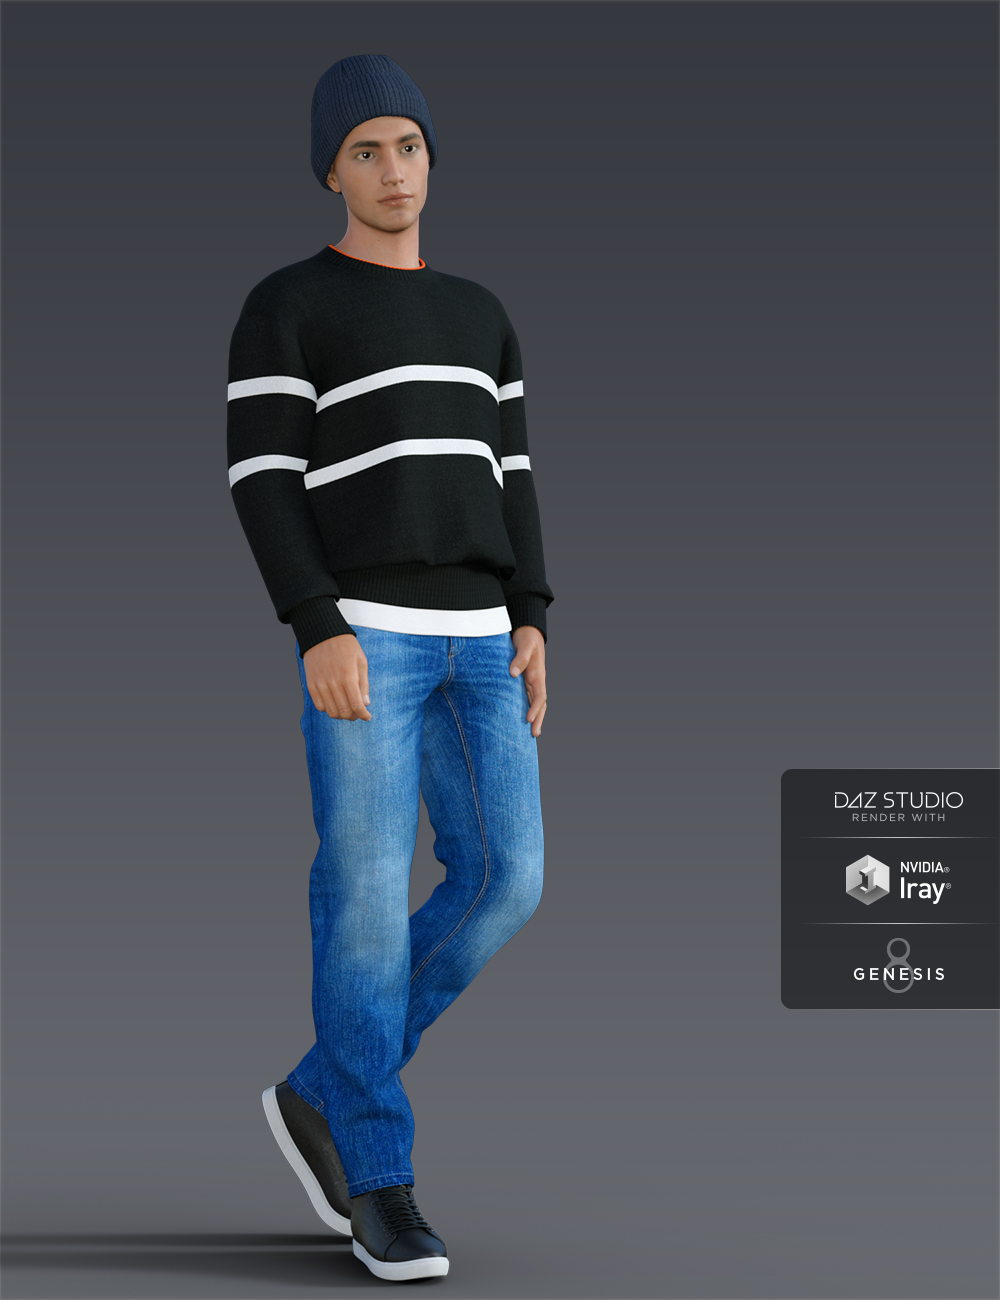 H&C Knit Sweater Outfit for Genesis 8 Male(s) by: IH Kang, 3D Models by Daz 3D